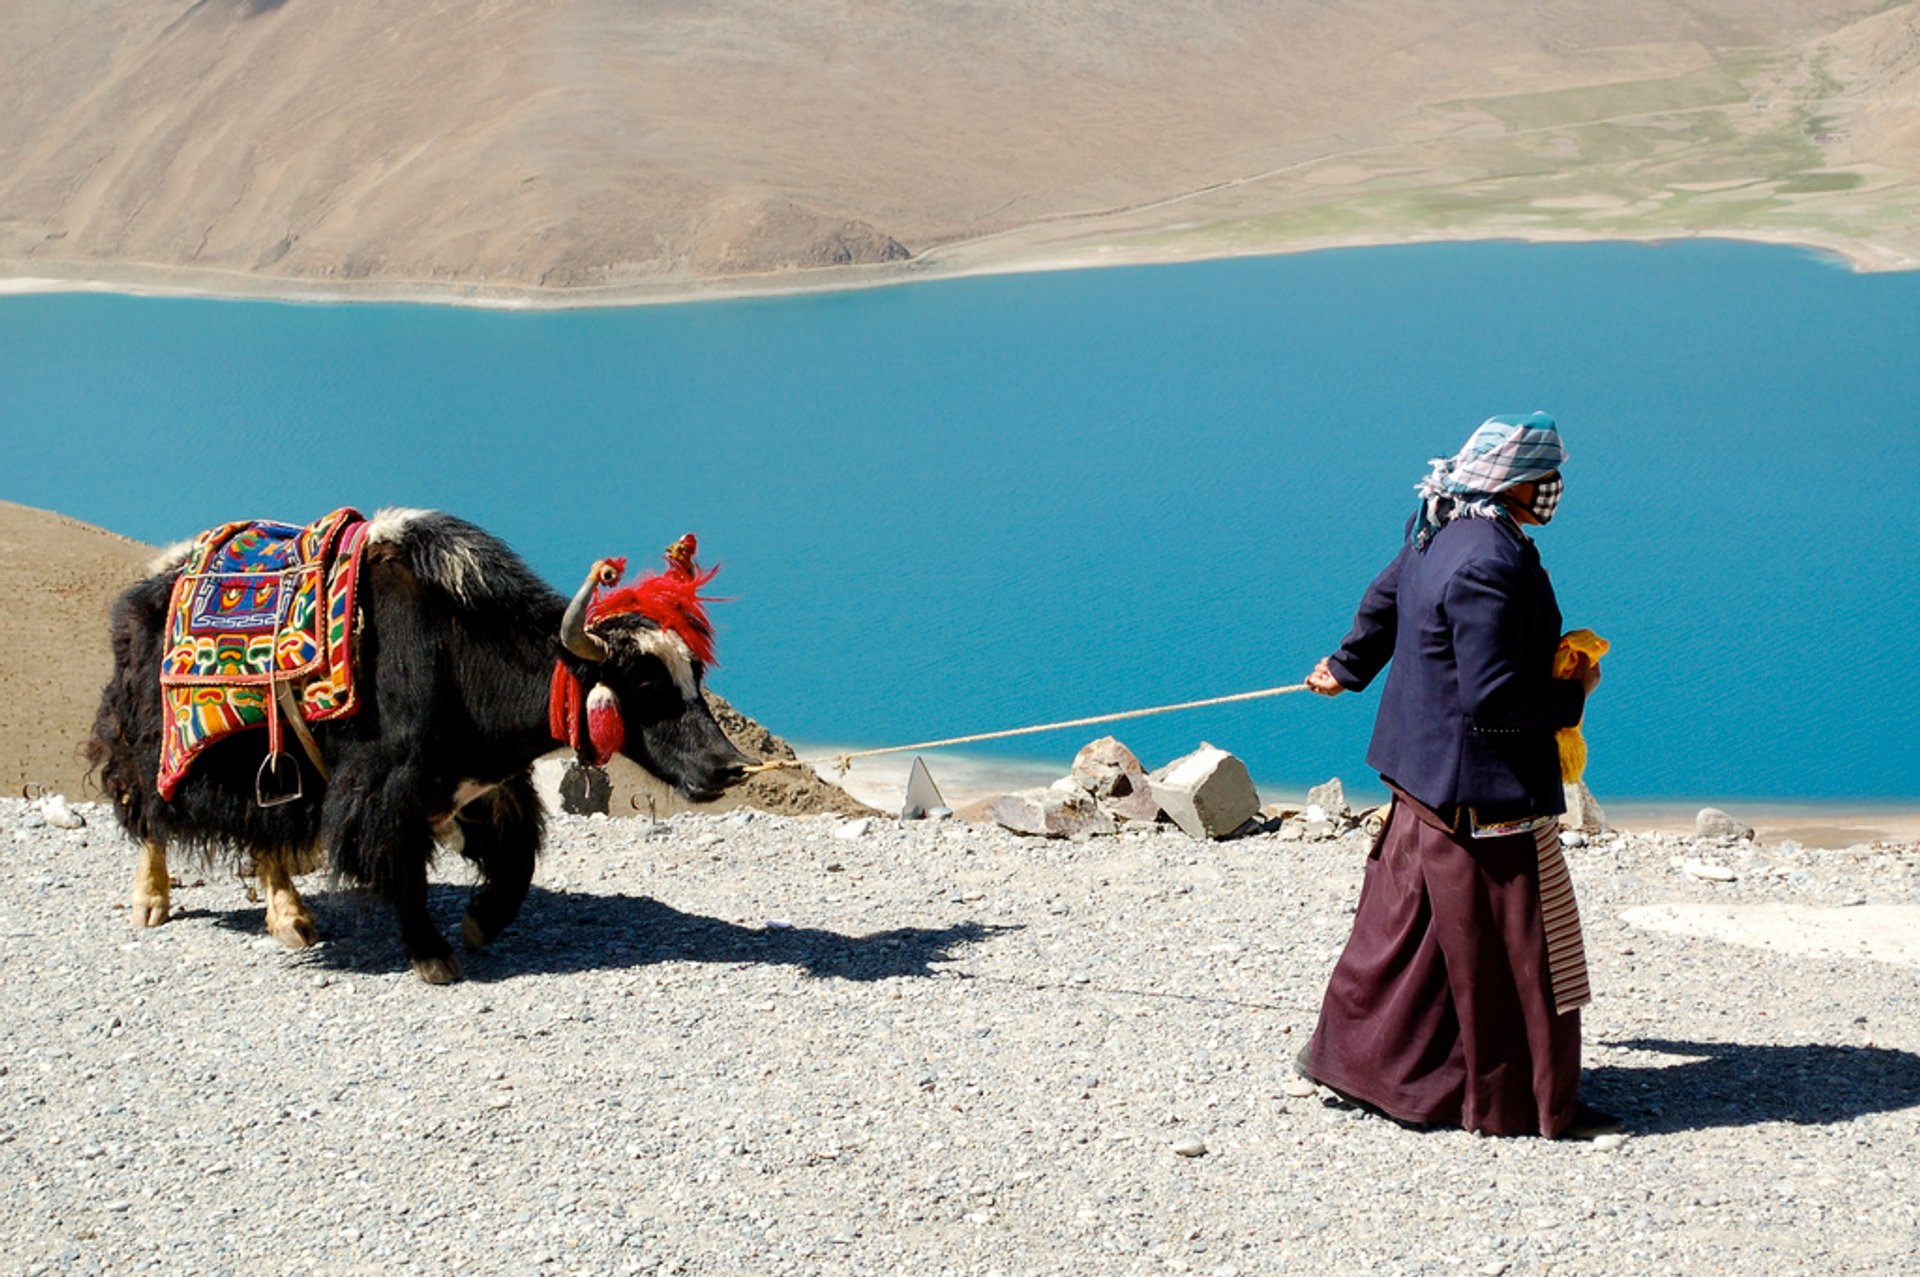 Yaks in Tibet - Best Season